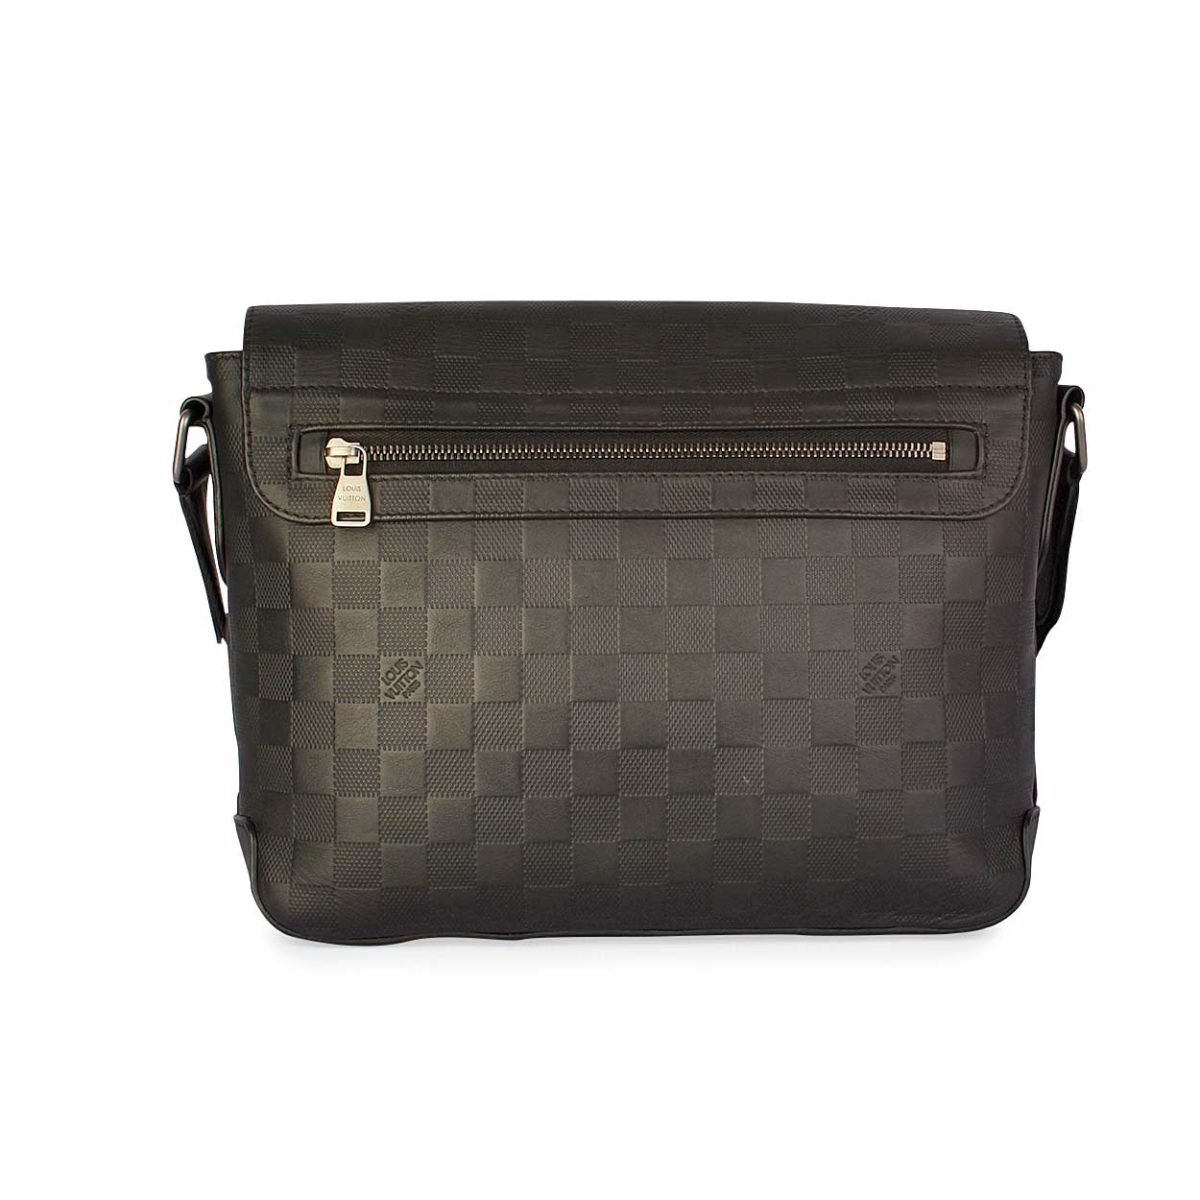 40a650924677 LOUIS VUITTON Damier Infini District MM Messenger Bag